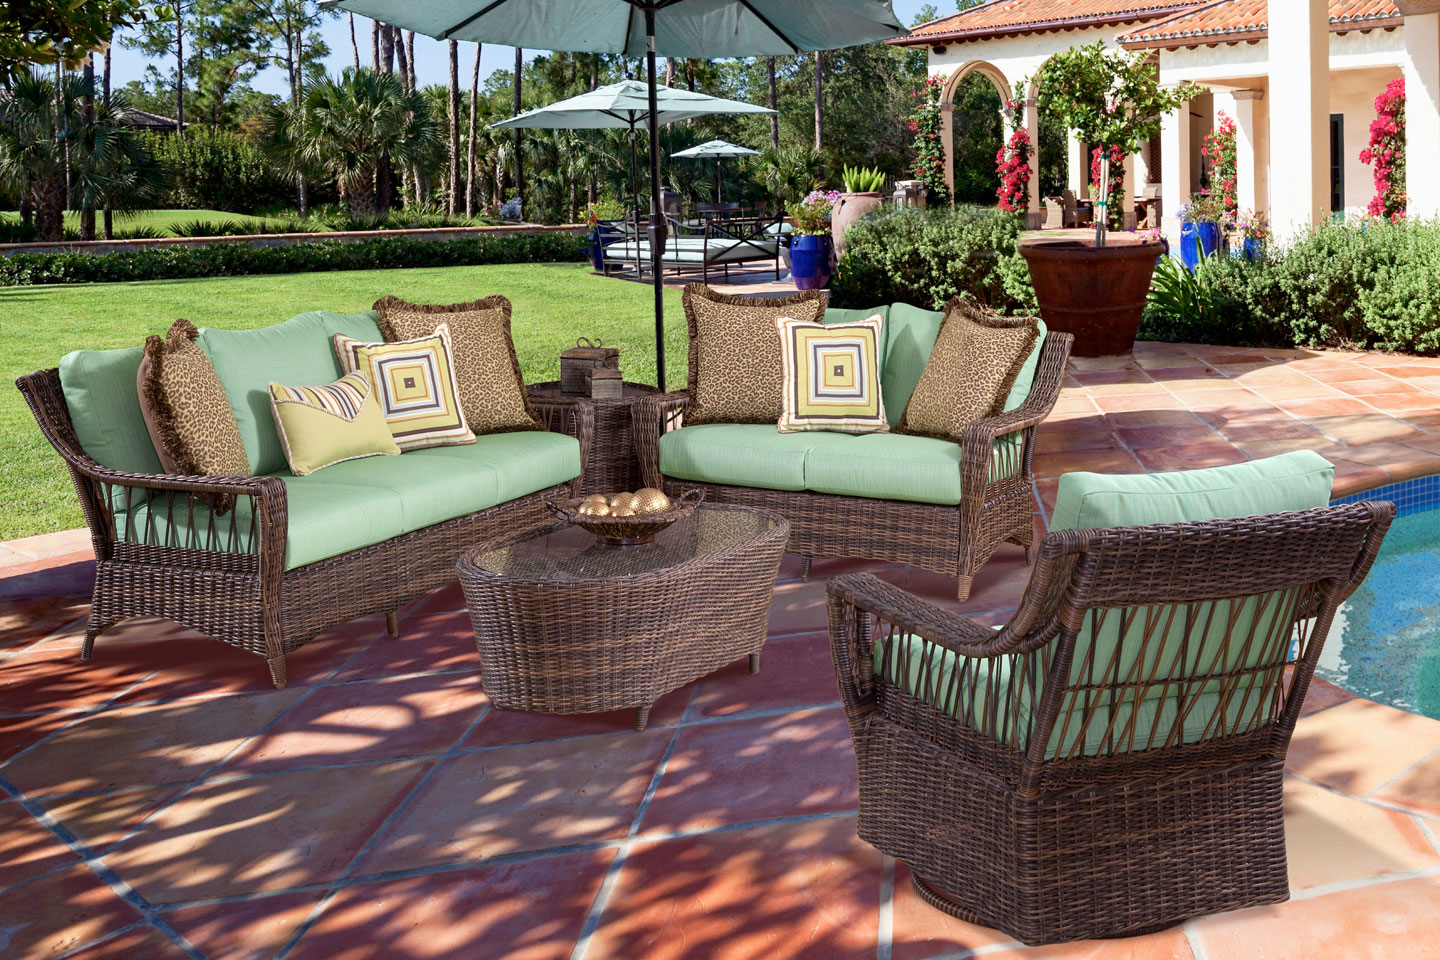 Martinique resin wicker patio furniture collection Plastic wicker patio furniture